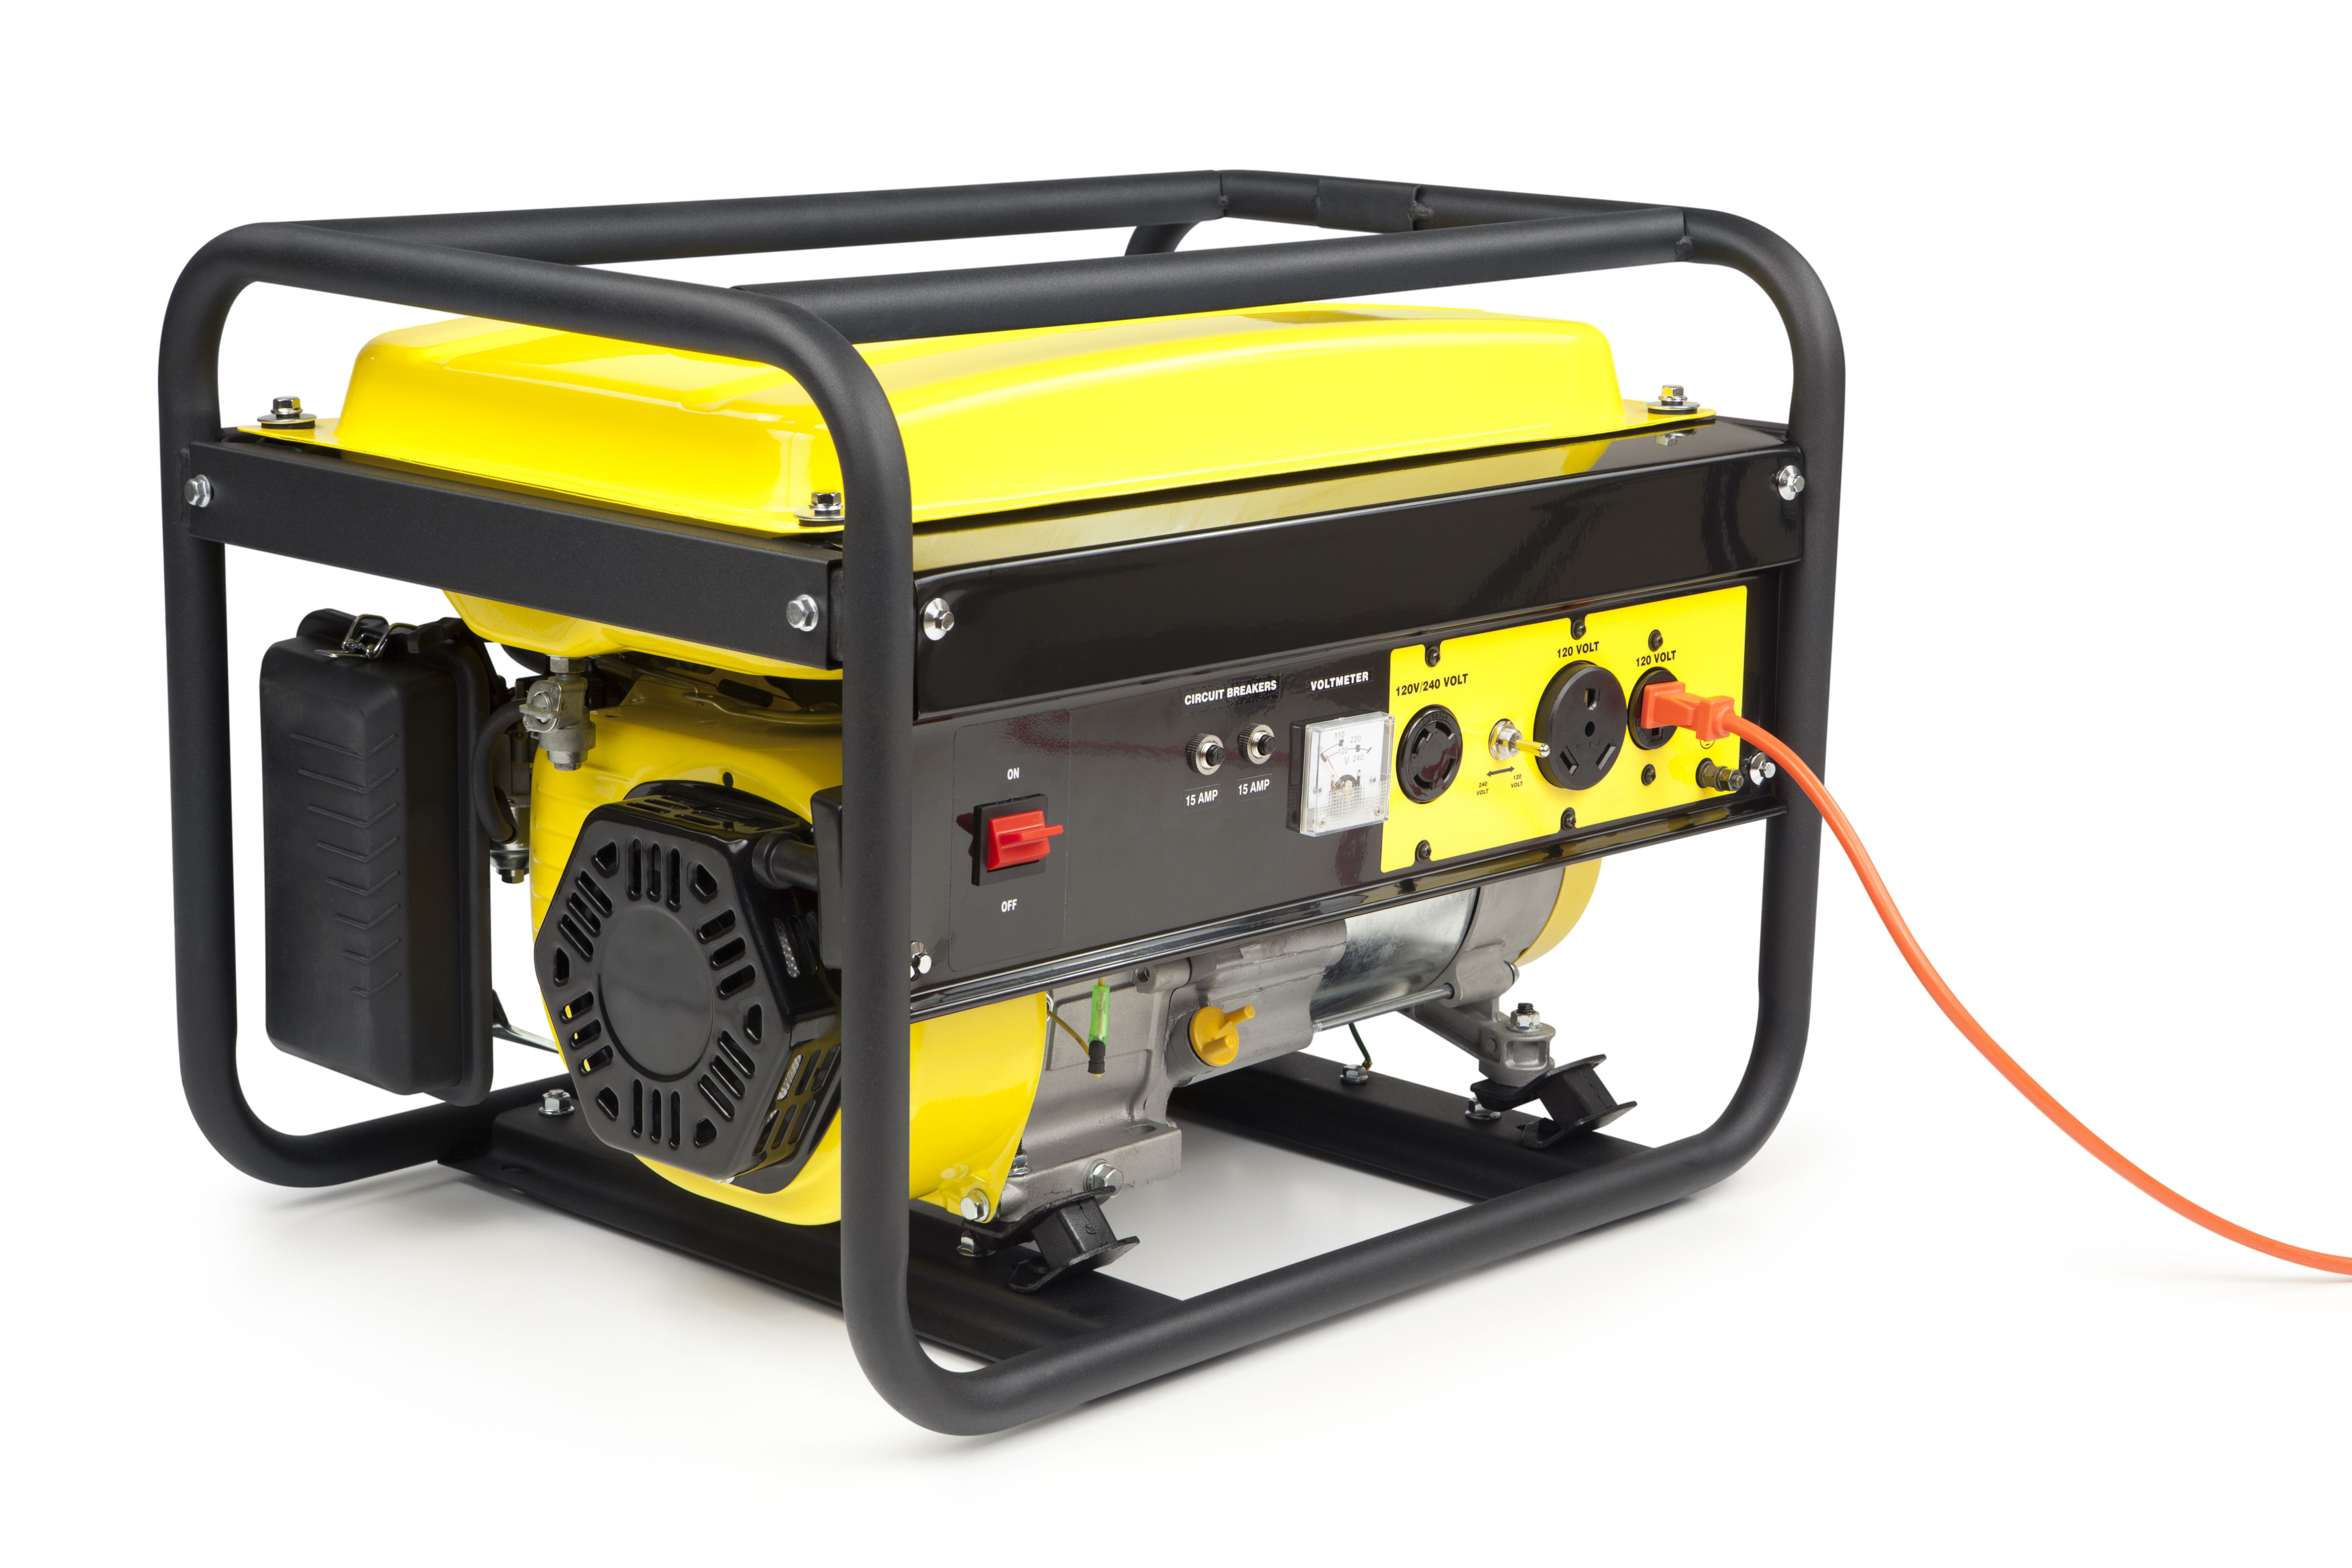 how to hook up a generator how to use a home generator power back generator wiring [ 5616 x 3744 Pixel ]